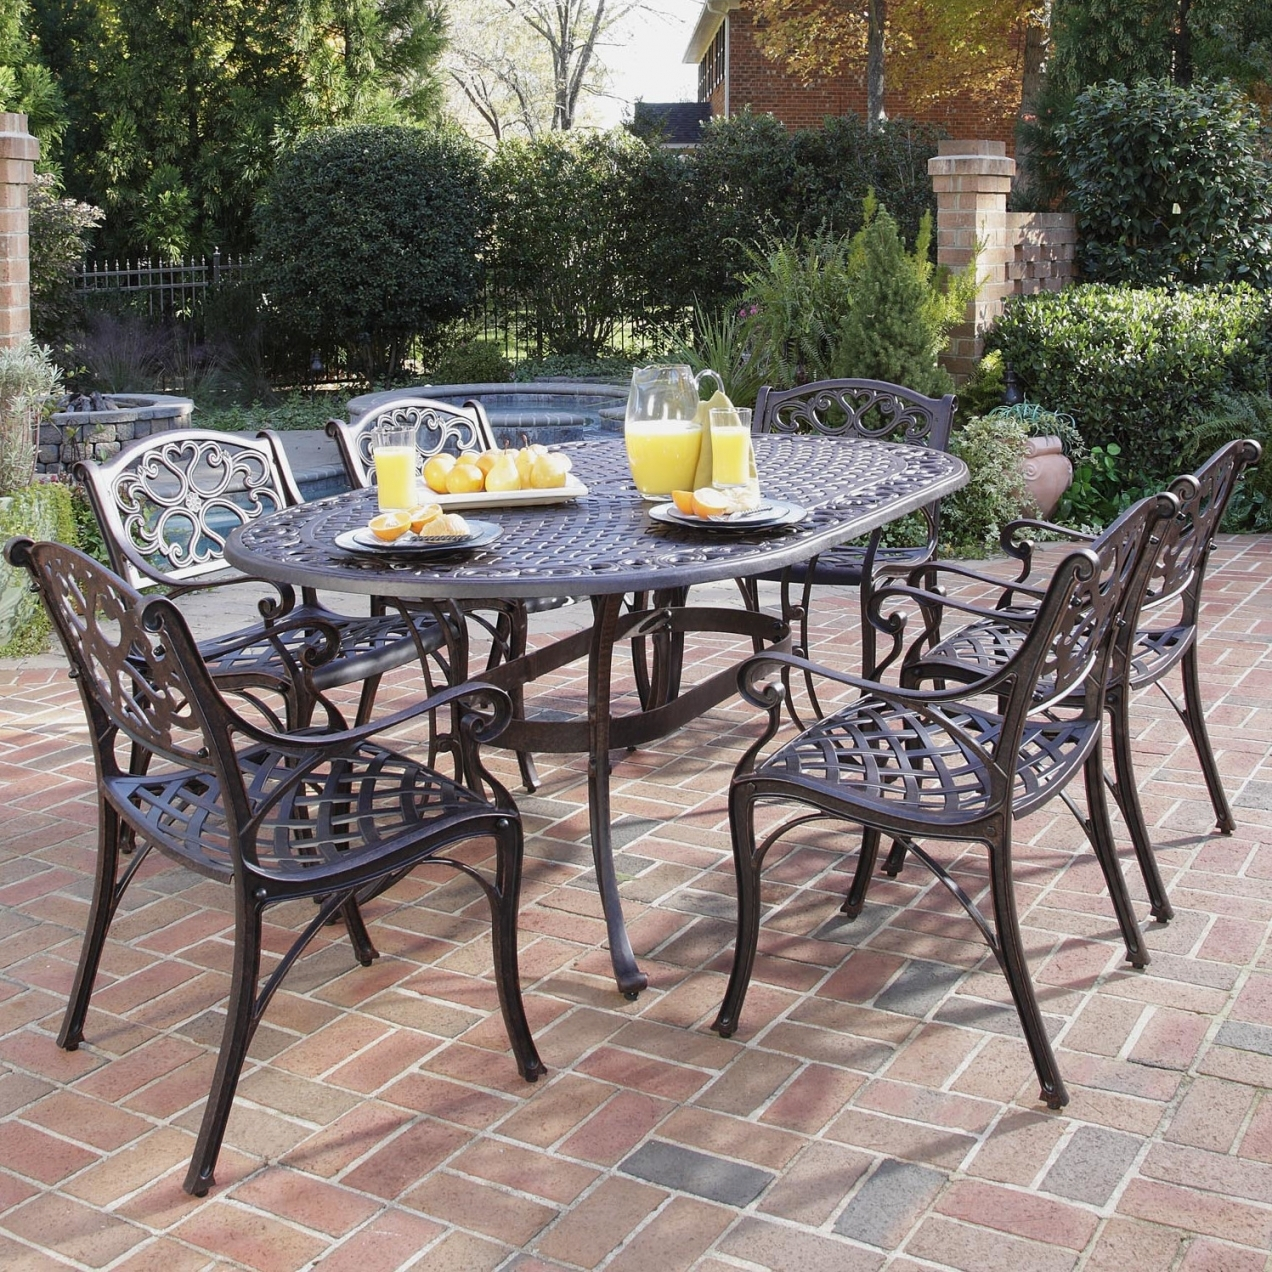 Commercial Outdoor Dining Furniture Pertaining To Commercial Outdoor Dining Furniture Great Commercial Outdoor Dining Furniture